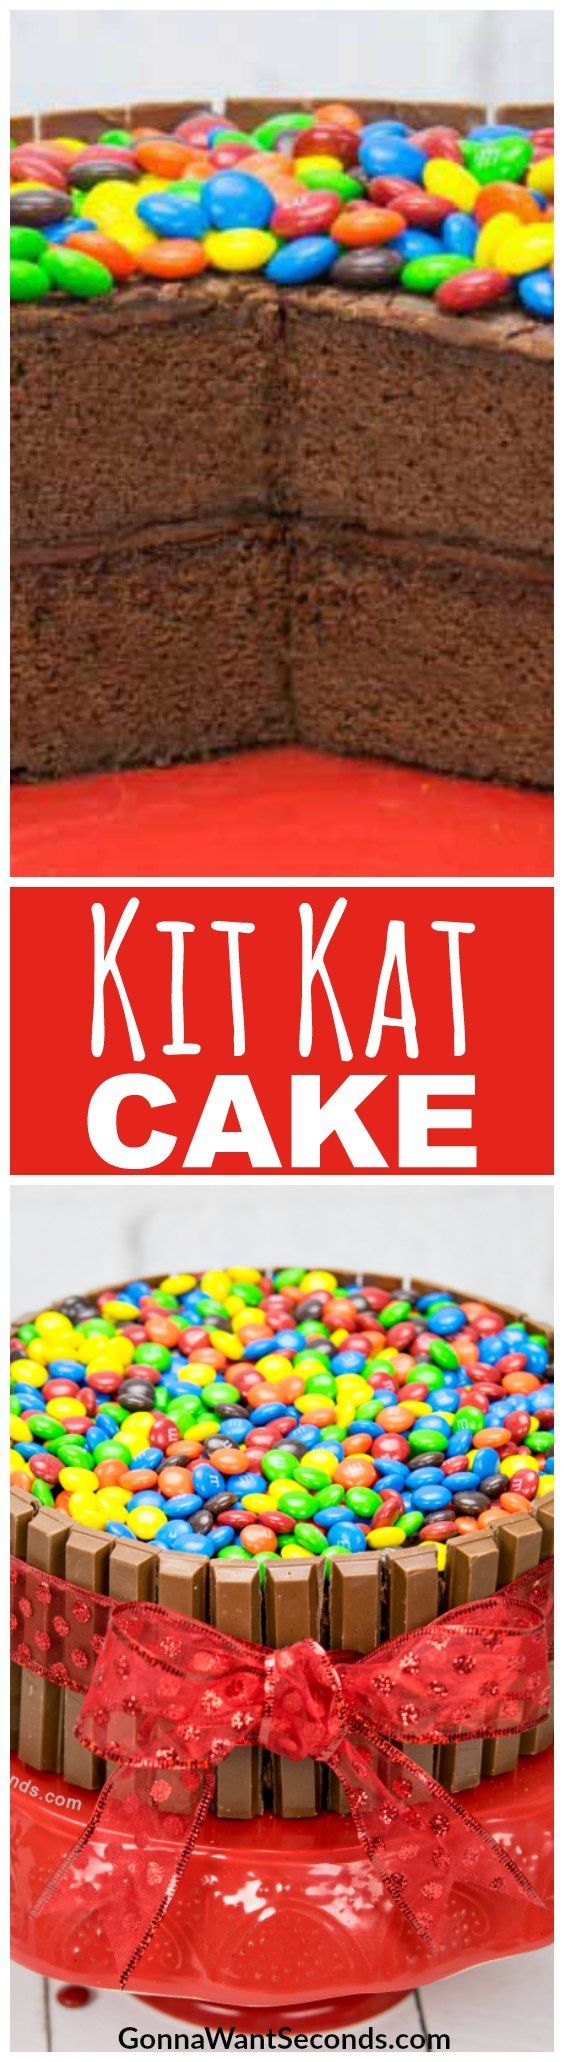 Cut me off a piece of that Kit Kat Cake! A moist, homemade chocolate cake with fudgy frosting makes this candy bar delivery vehicle something special.